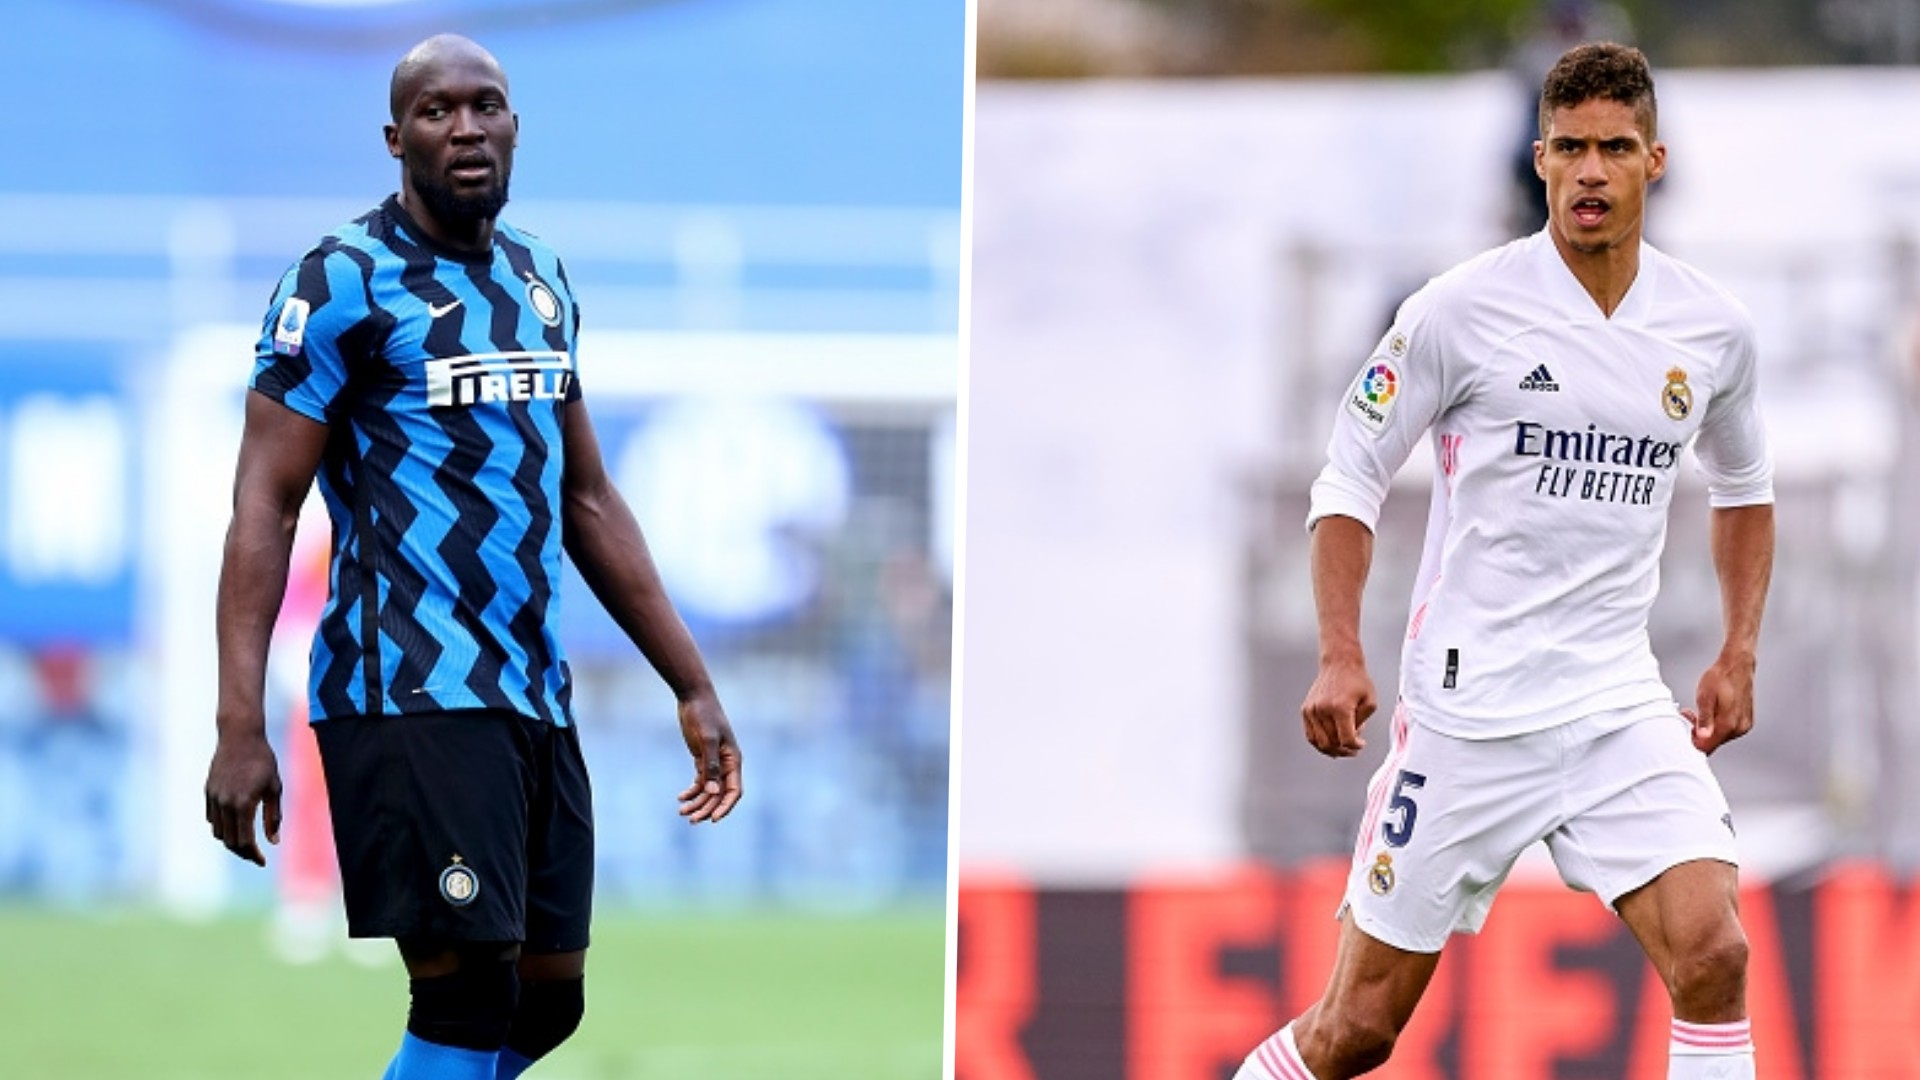 Romelu Lukaku or Raphael Varane? - Who are the top new players to watch out for in the Premier League?